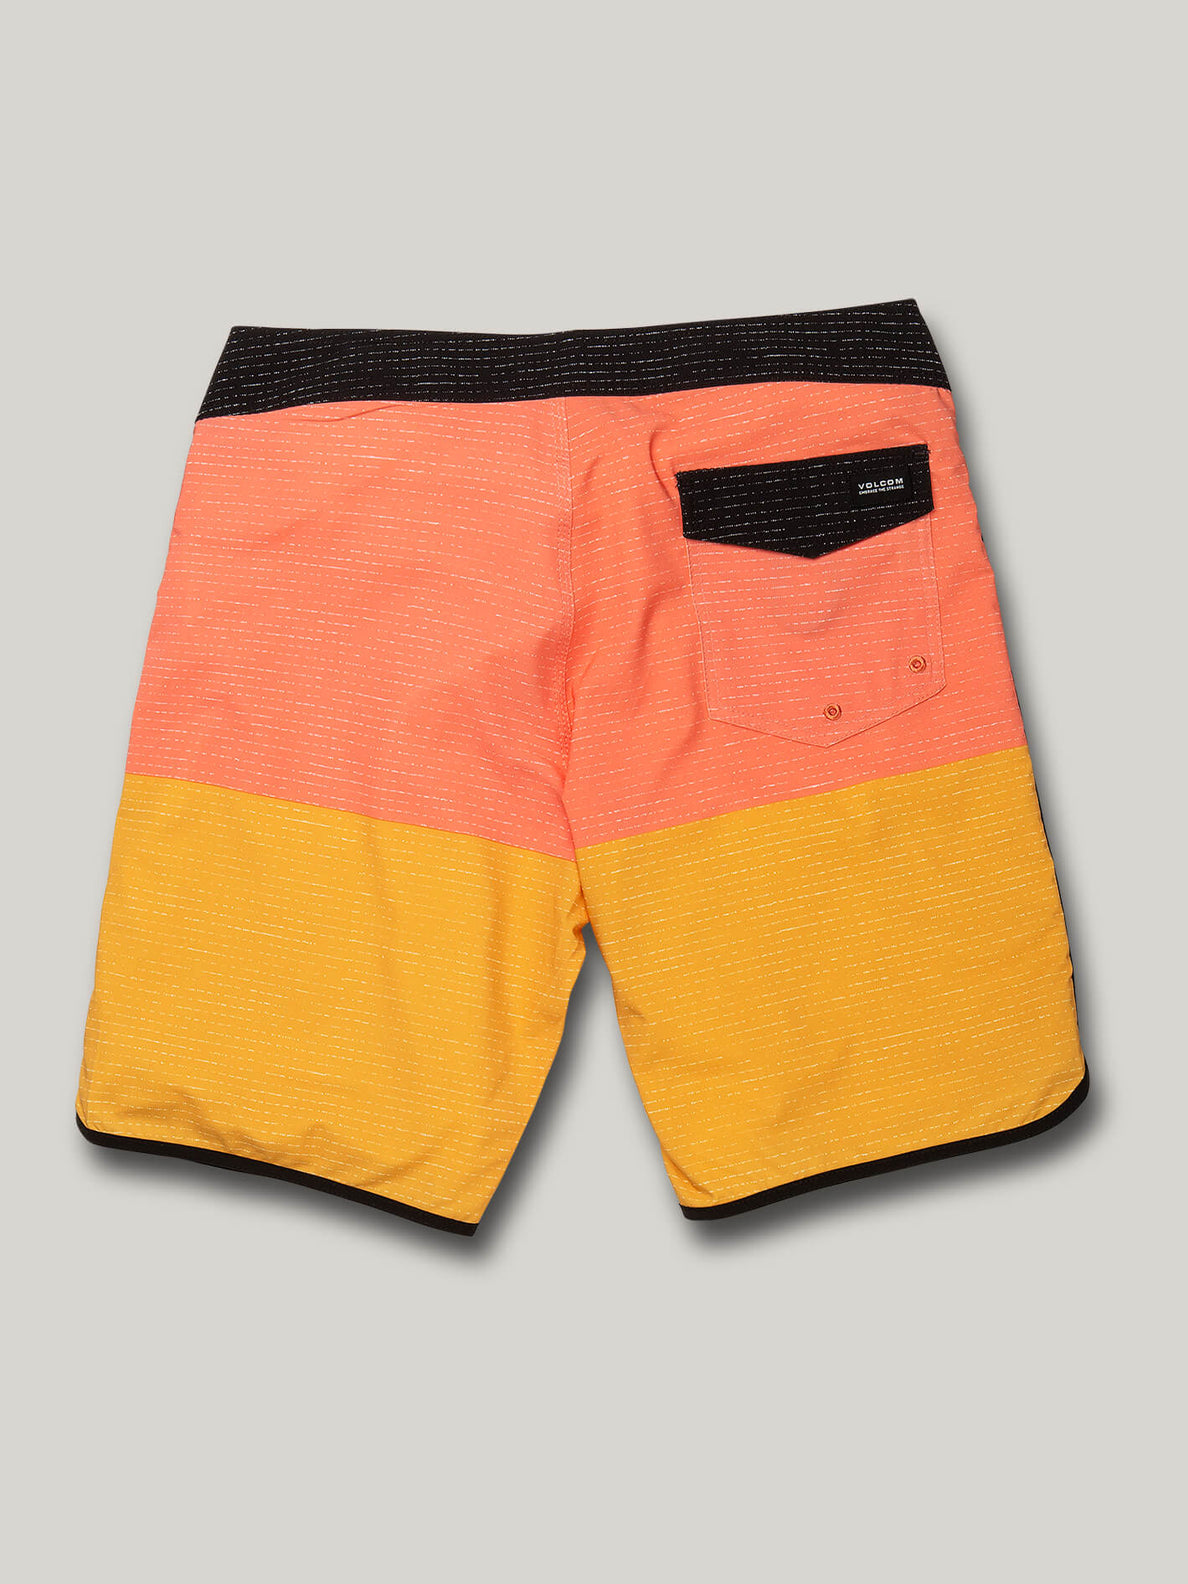 Lido Scallop Mod-Tech Trunks - Mineral Yellow (A0822015_MYL) [B]